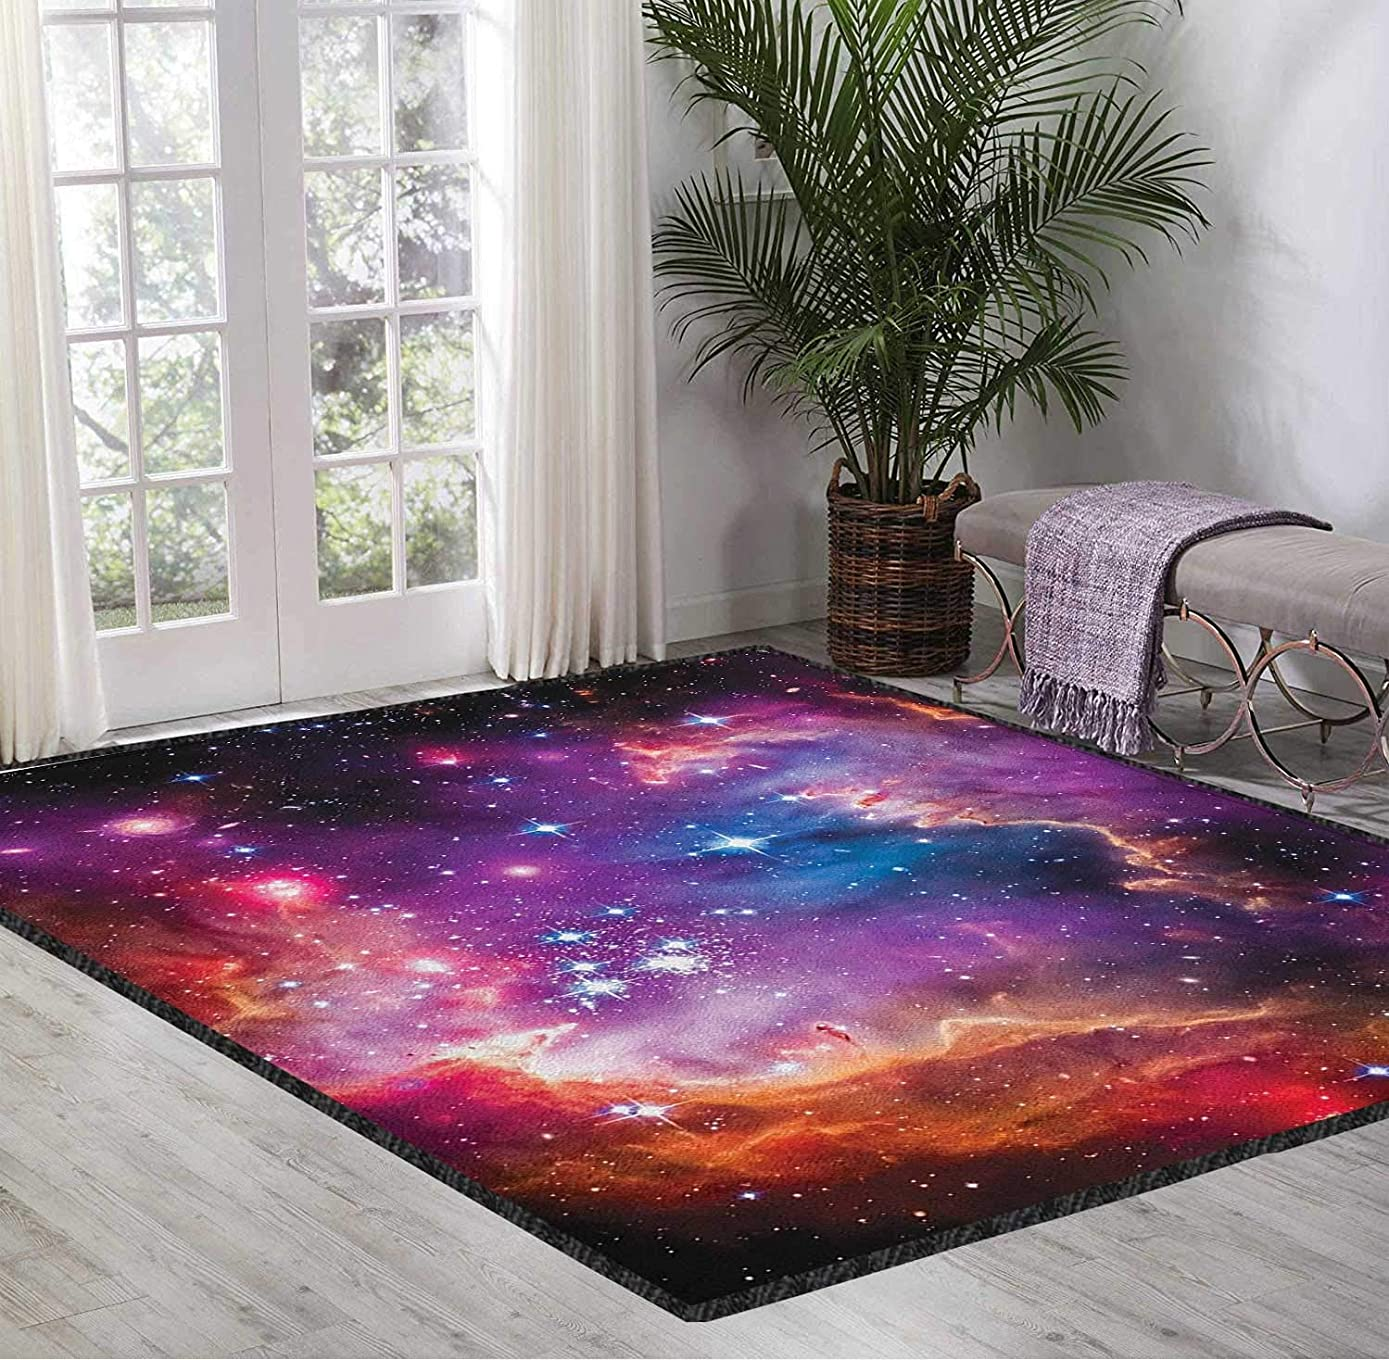 Throw Carpet Rugs Galaxy Baby Mats for Playing Magellanic Cloud Stars and Colorful Fantastic Cosmic Universe View Pattern Purple Blue Orange 5X8 Ft